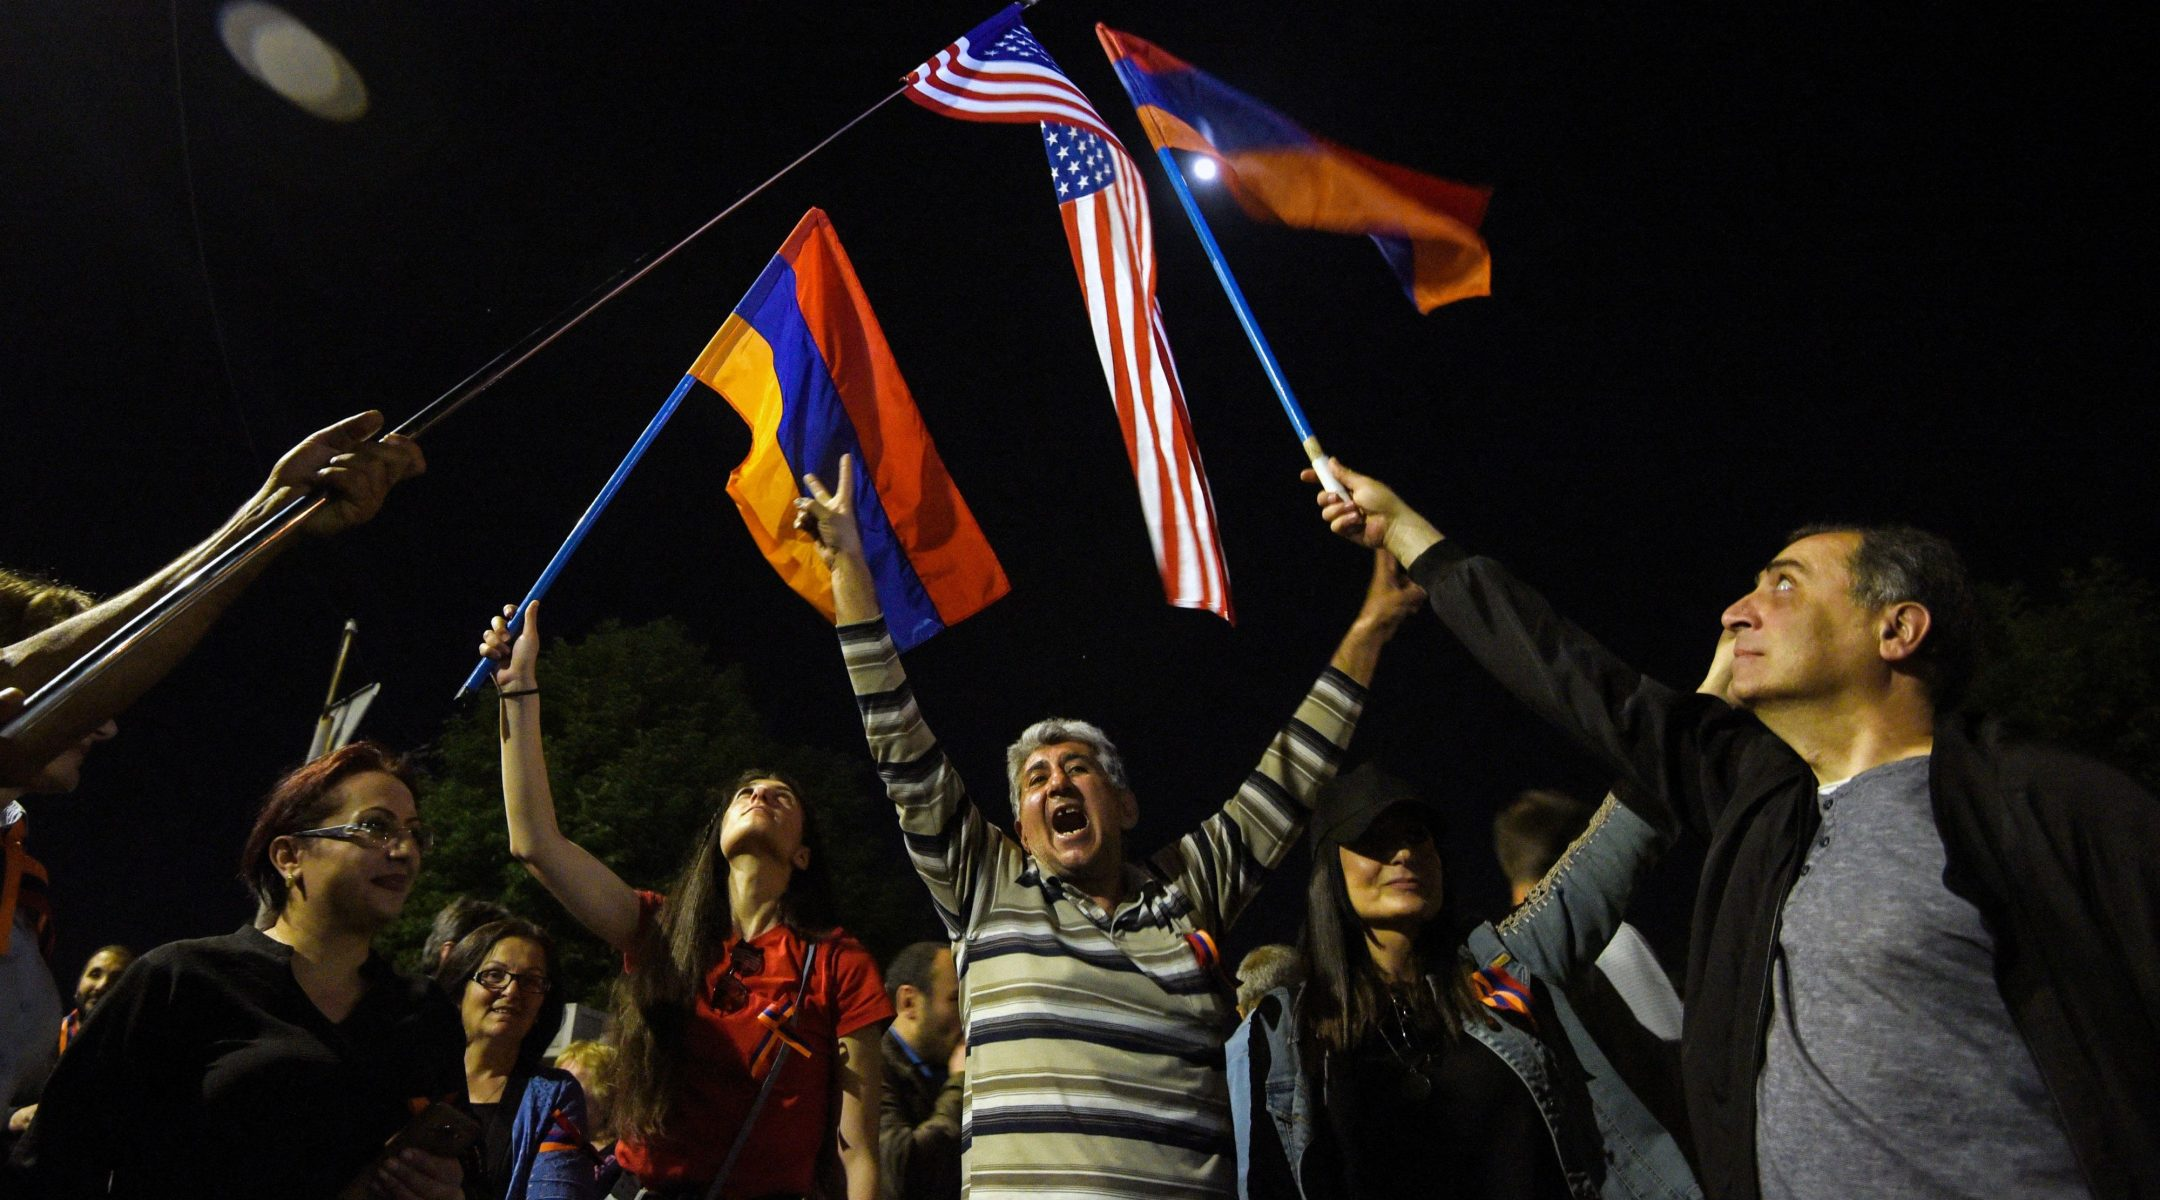 People wave Armenian and U.S. flags in front of the U.S. Embassy in the Armenian capital Yerevan after President Joe Biden recognized the 1915 killings of Armenians by Ottoman forces as genocide, April 24, 2021. (Photo/JTA-Karen Minasyan-AFP via Getty Images)